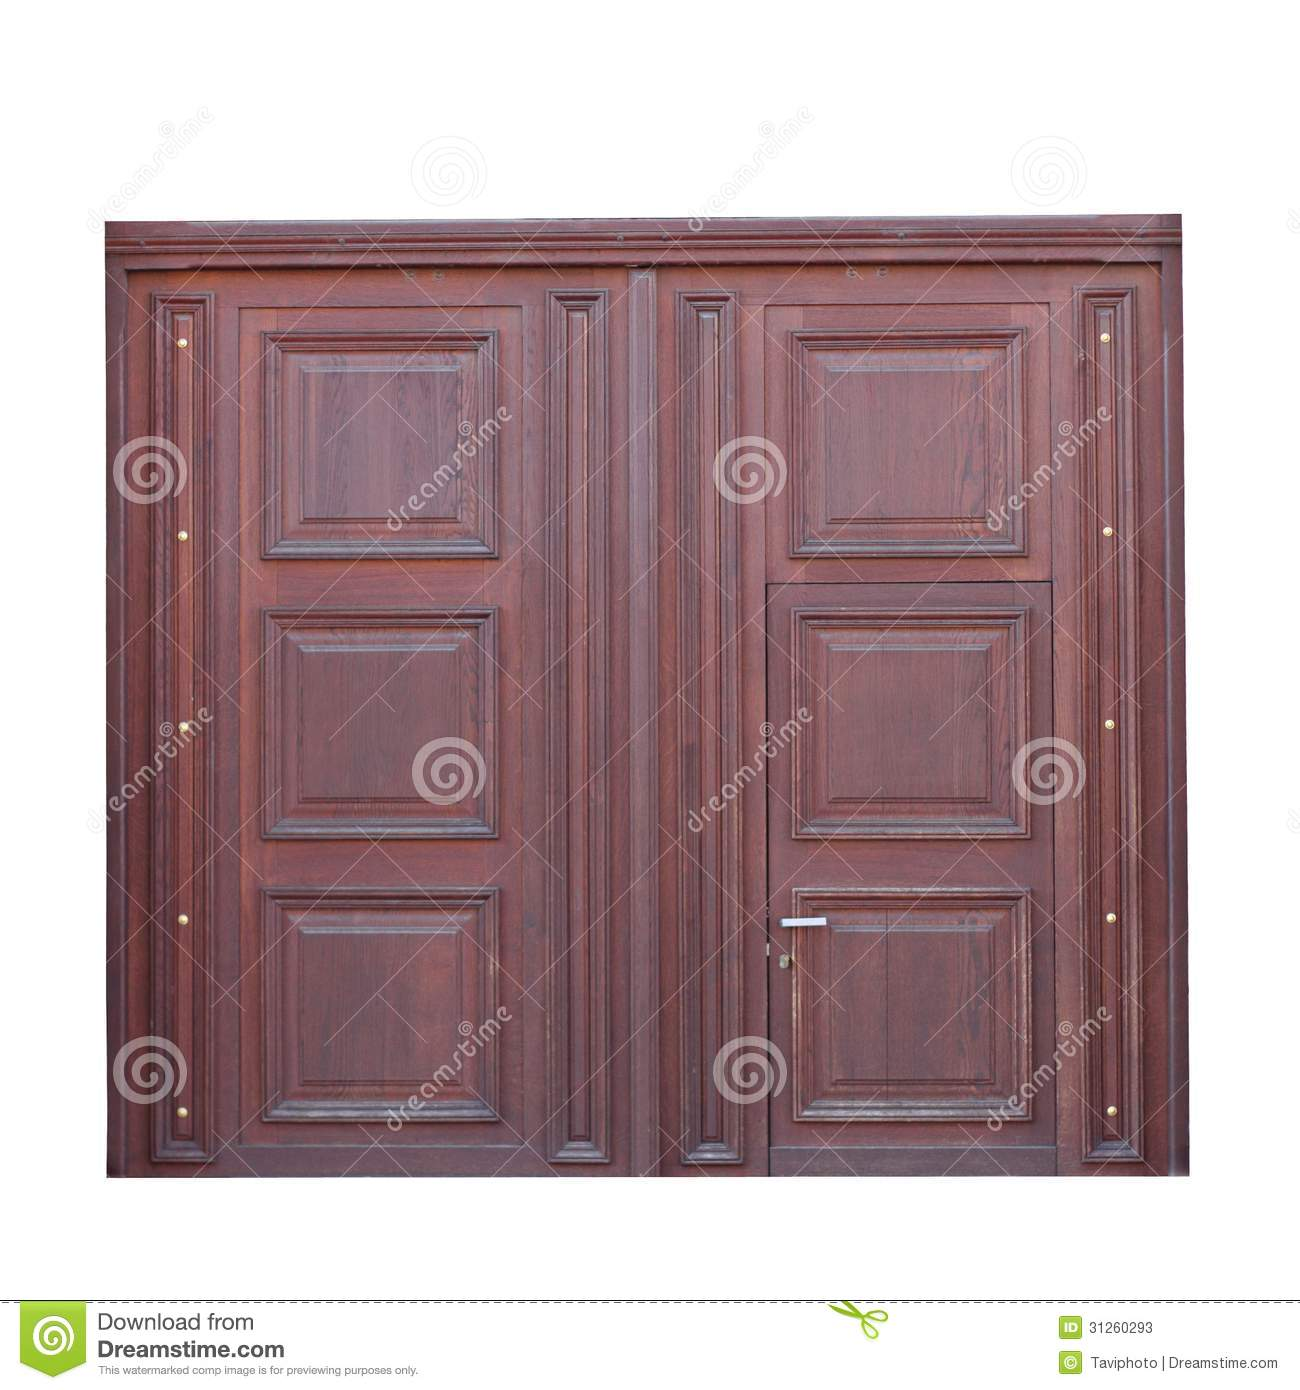 1390 #82A427 Closeup Of Beautiful Brown Wooden Door Cutout Over White. image Beautiful Wooden Doors 46731300